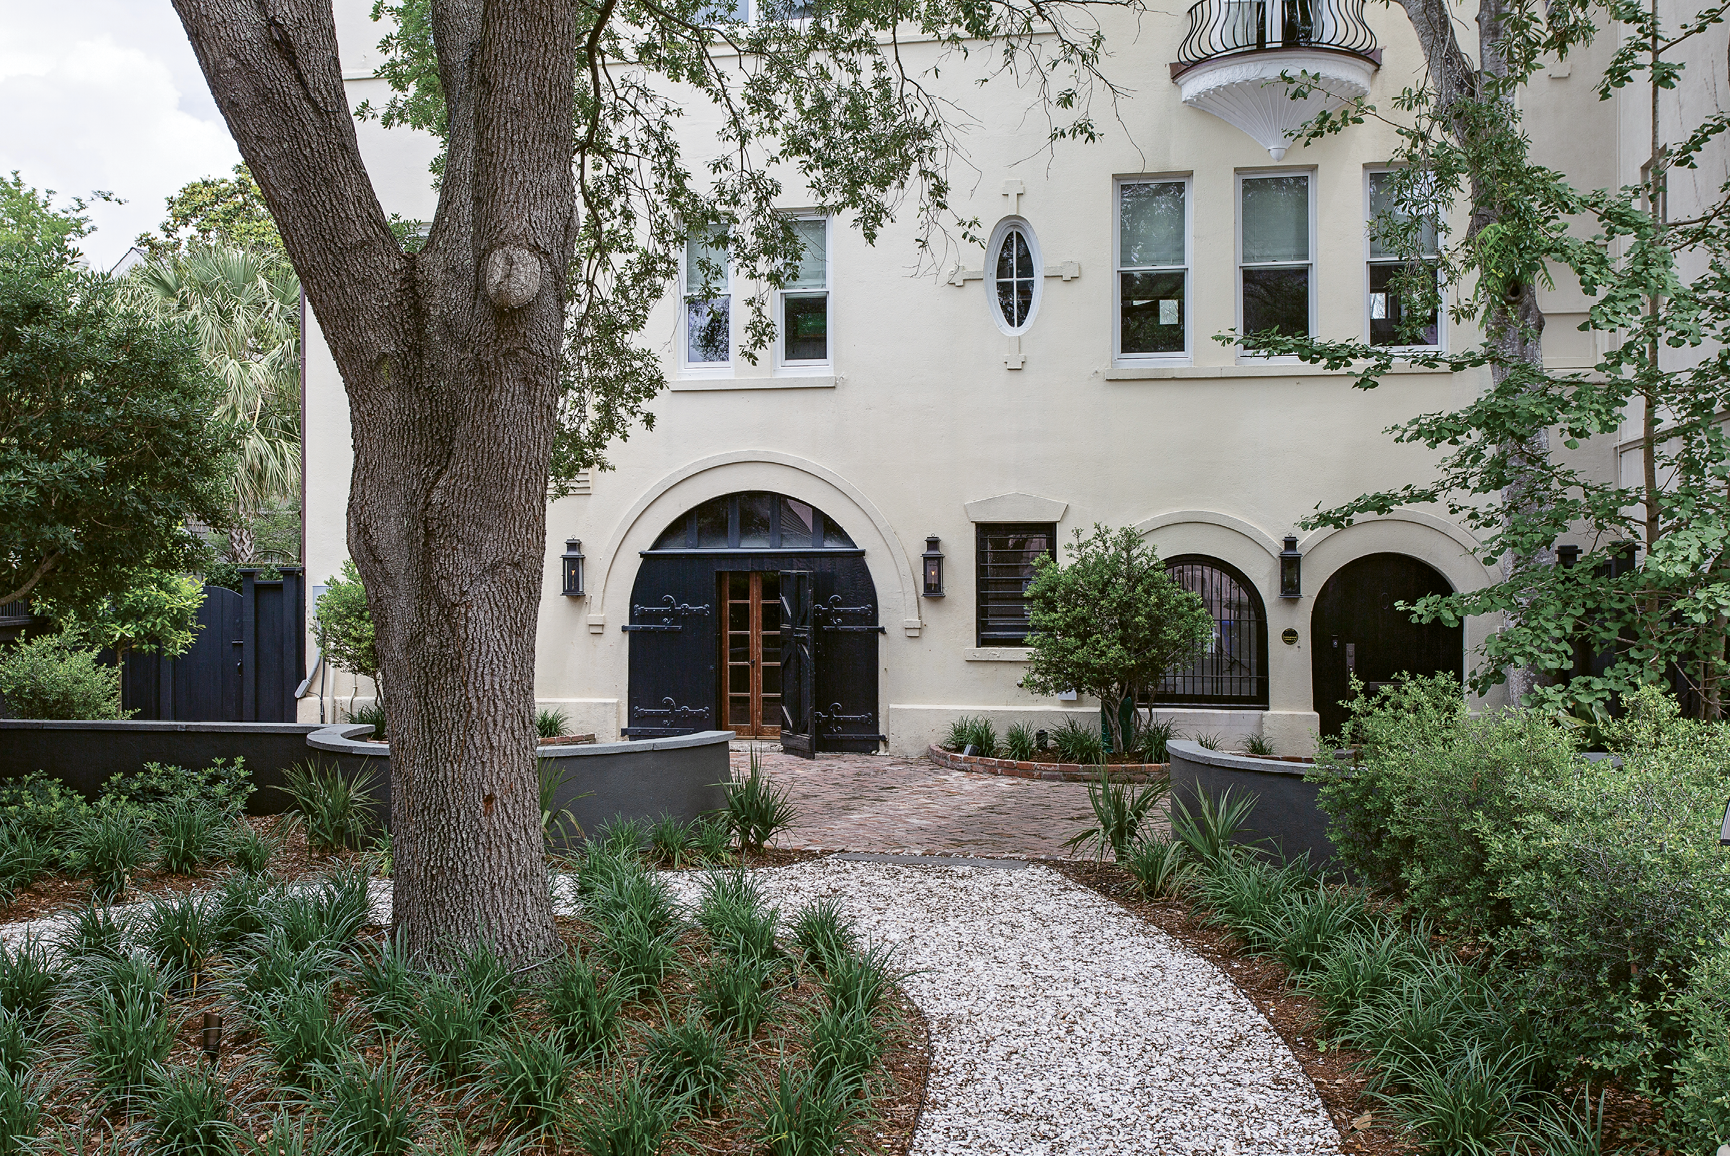 """Go with the Flow: Maryland-based couple Rick and Kristy Schultz """"bought a garage""""—i.e. a three-story carriage house in sight of the Battery—as a second home, enlisting Richard Marks Restorations and Kristin Peake Interiors to transform the formerly drab dependency. Just as renovations were wrapping up, Tropical Storm Irma washed a foot and a half of surge into the ground floor (left), which spurred on storm adaptations. They revised the exterior hardscape with an eye toward drainage and changed up interior materials, furnishings, and electrical wiring to suit."""